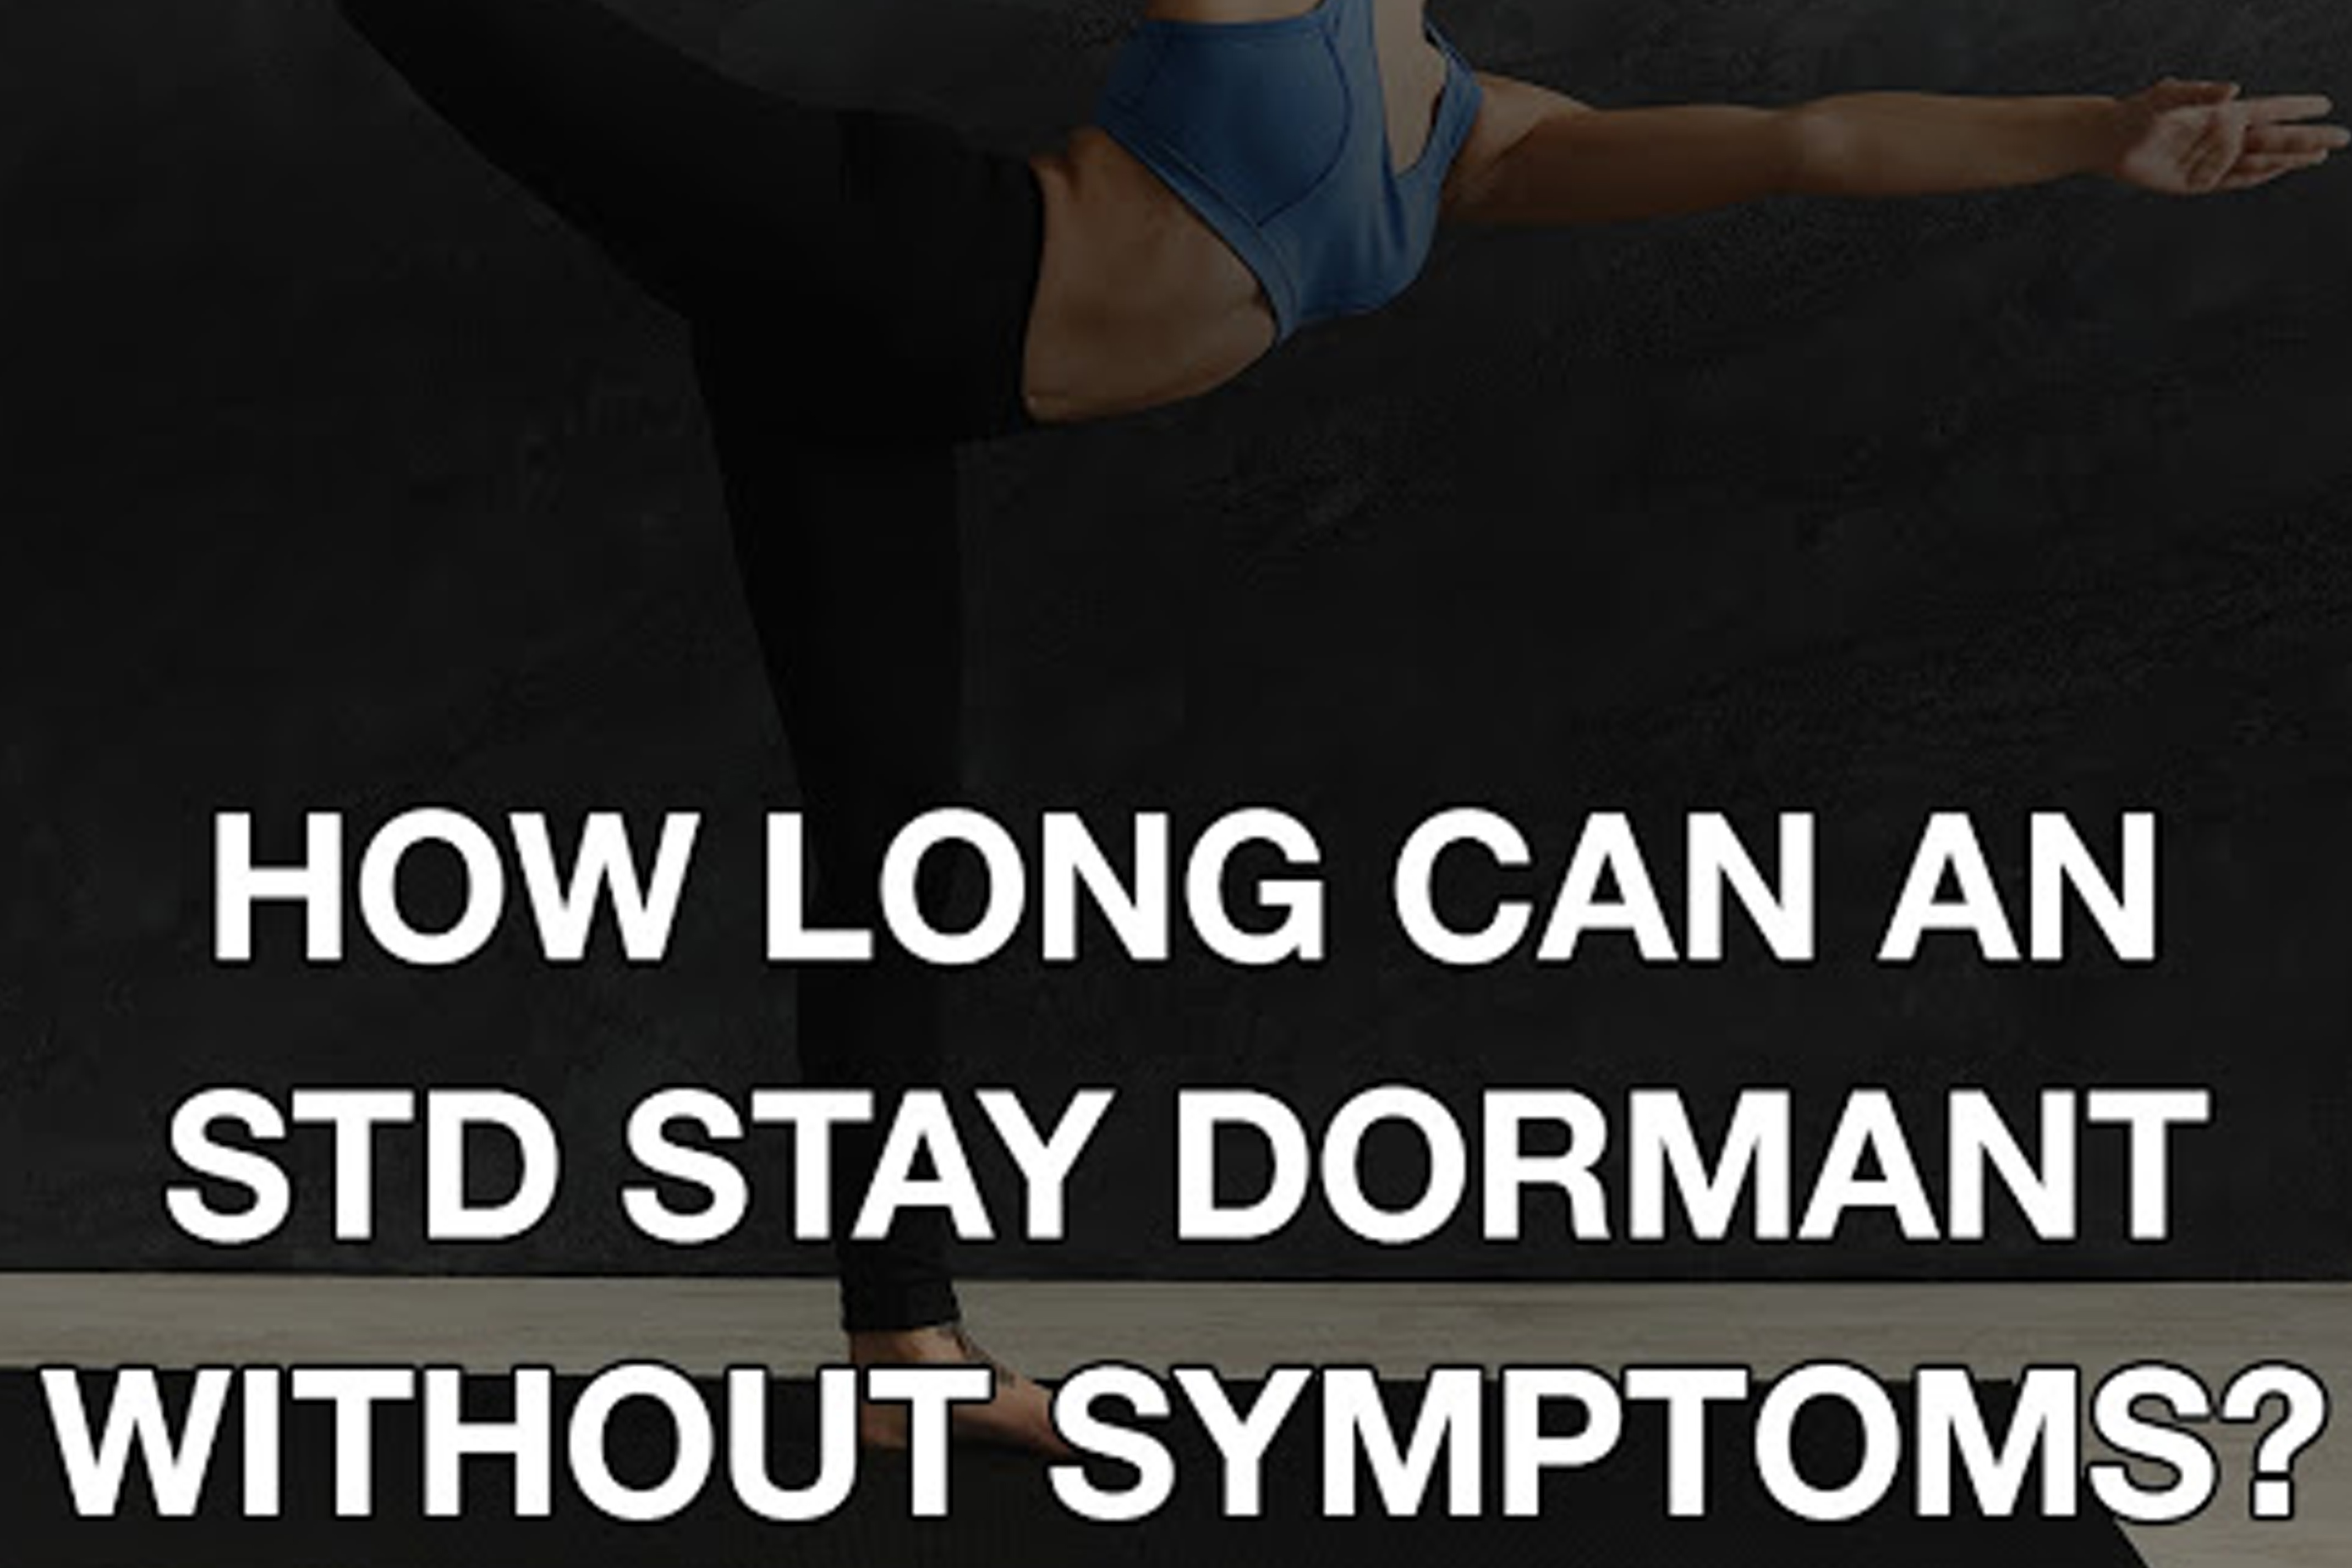 How Long Can An STD Stay Dormant Without Symptoms?